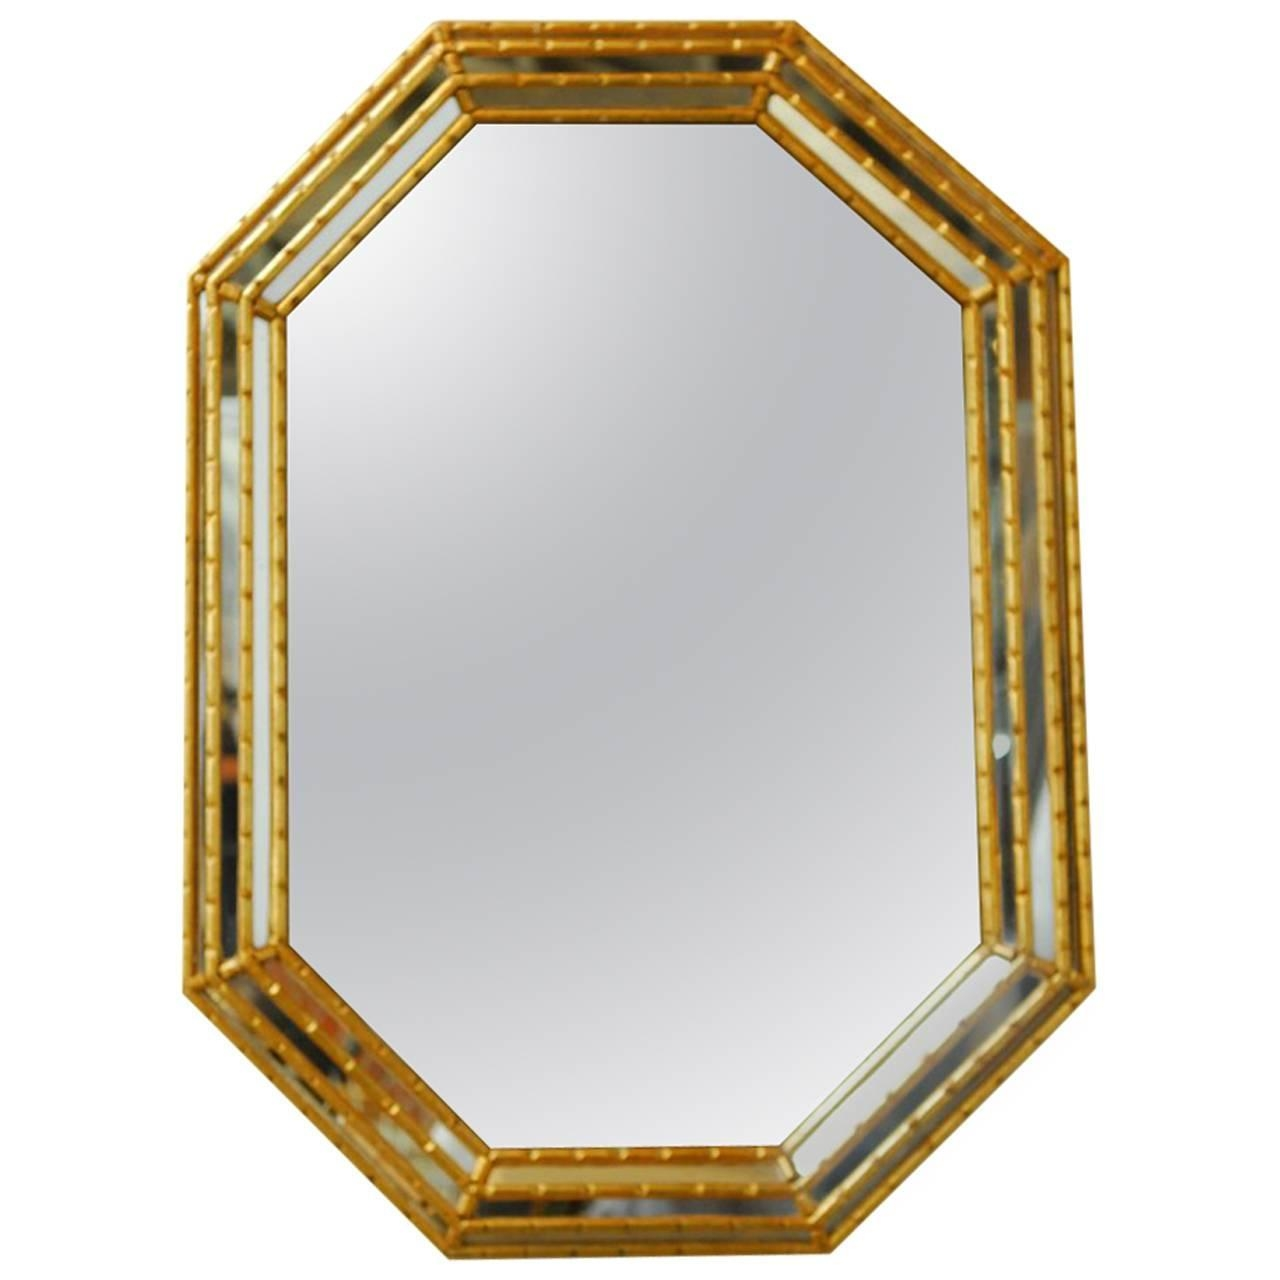 Trio Of Gothic Arched Solid Brass Mirrors For Sale At 1stdibs With Regard To Brass Mirrors For Sale (Image 13 of 15)